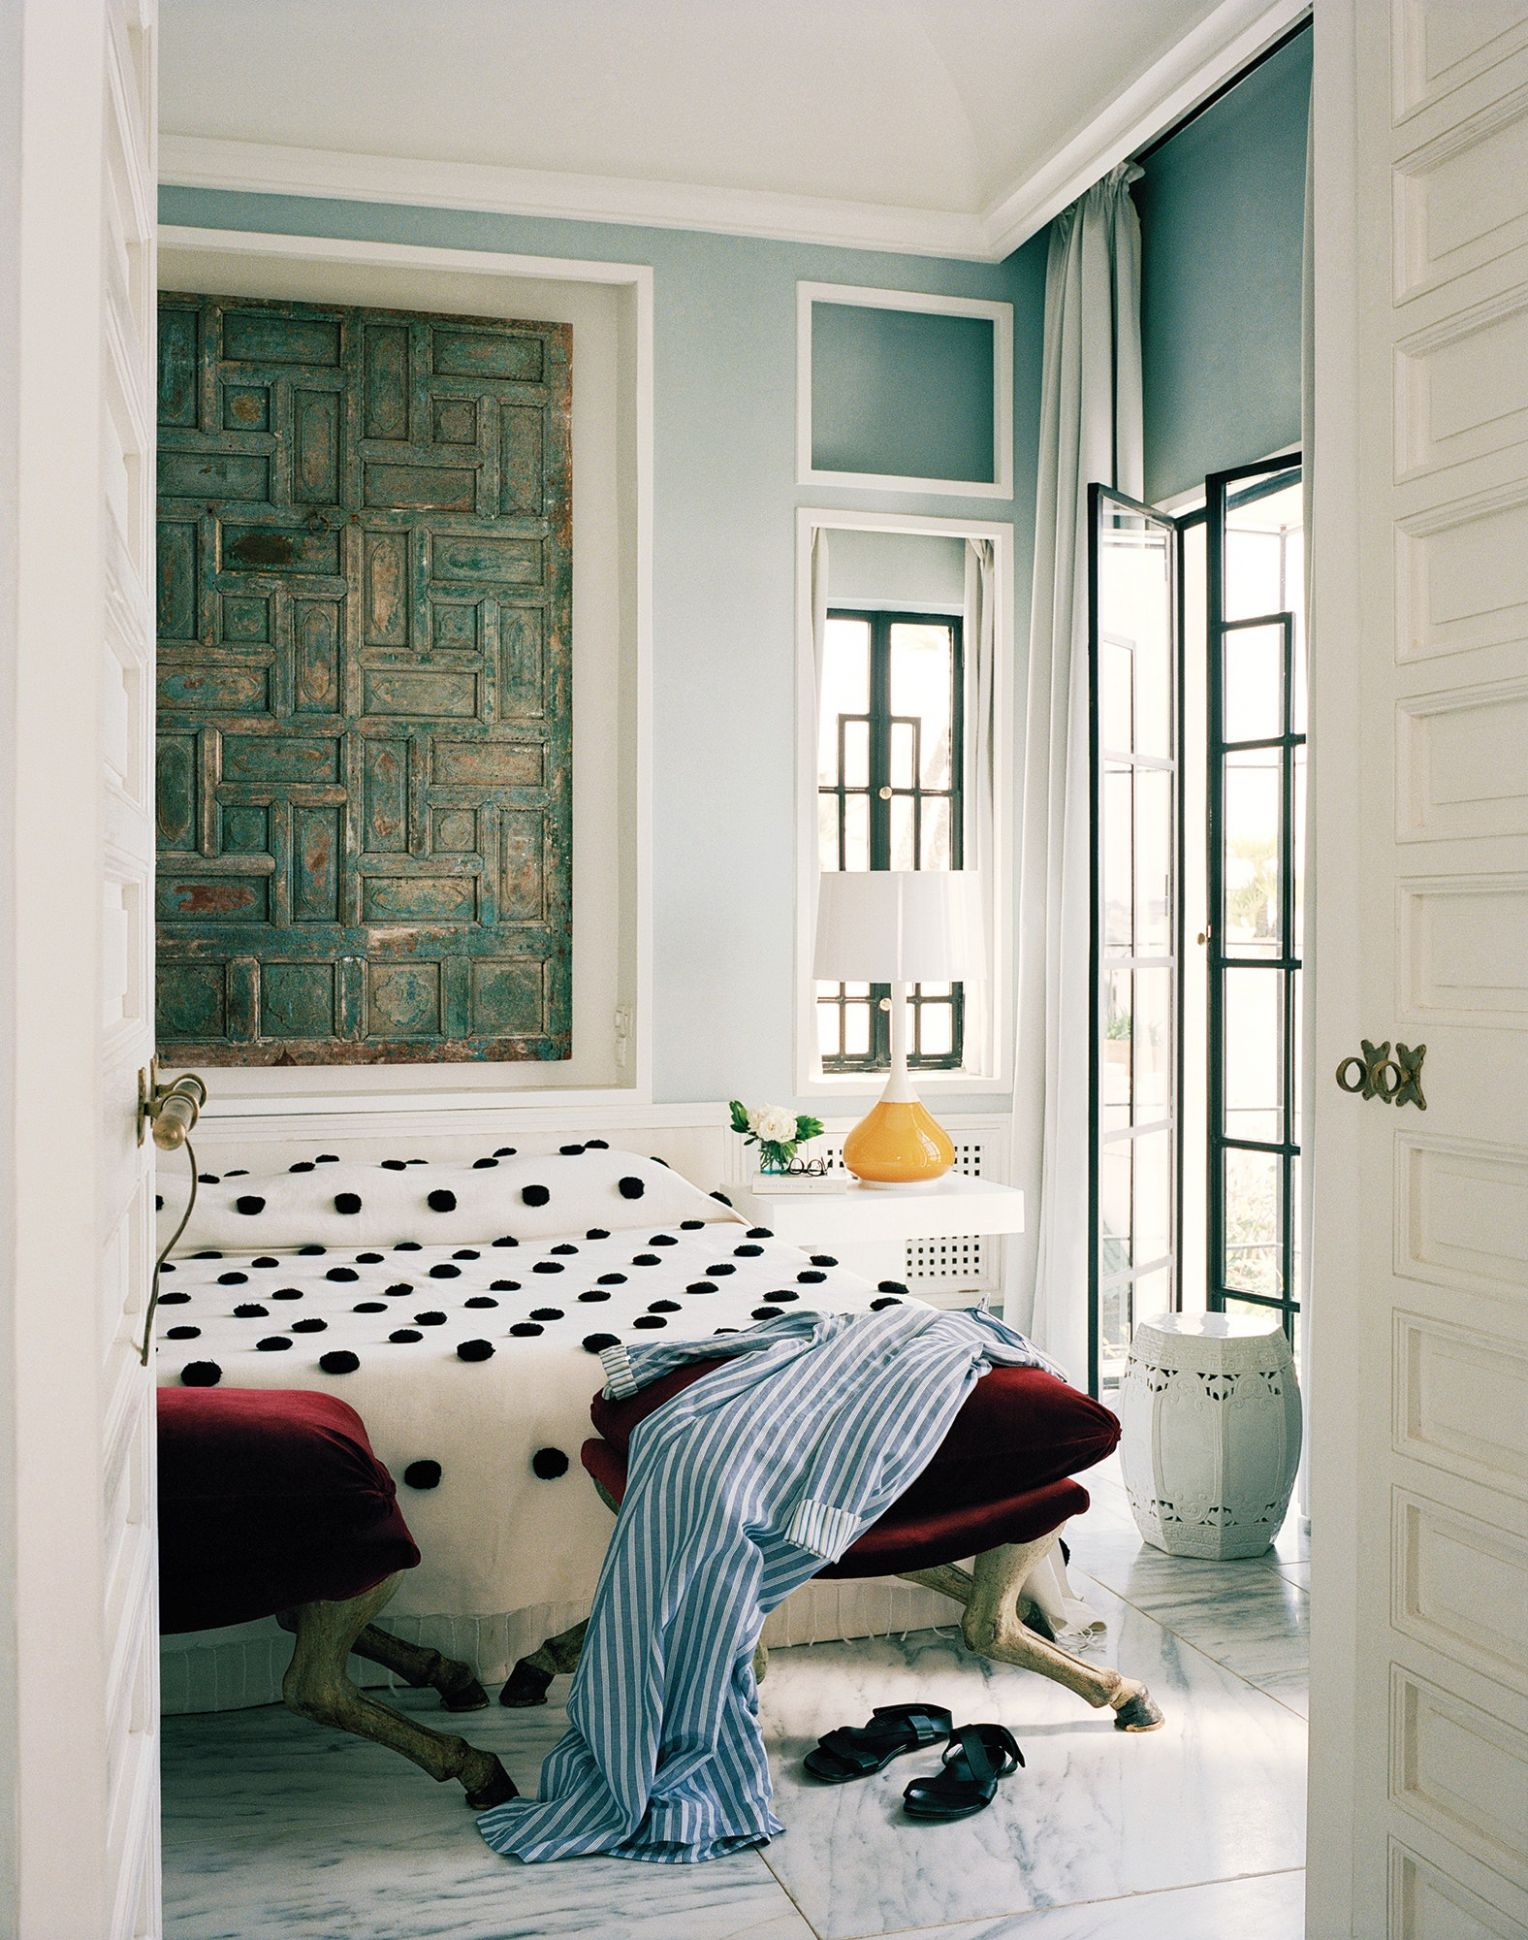 The Most Beautiful Bedrooms From the New Vogue Living Book | Vogue - bedroom ideas vogue